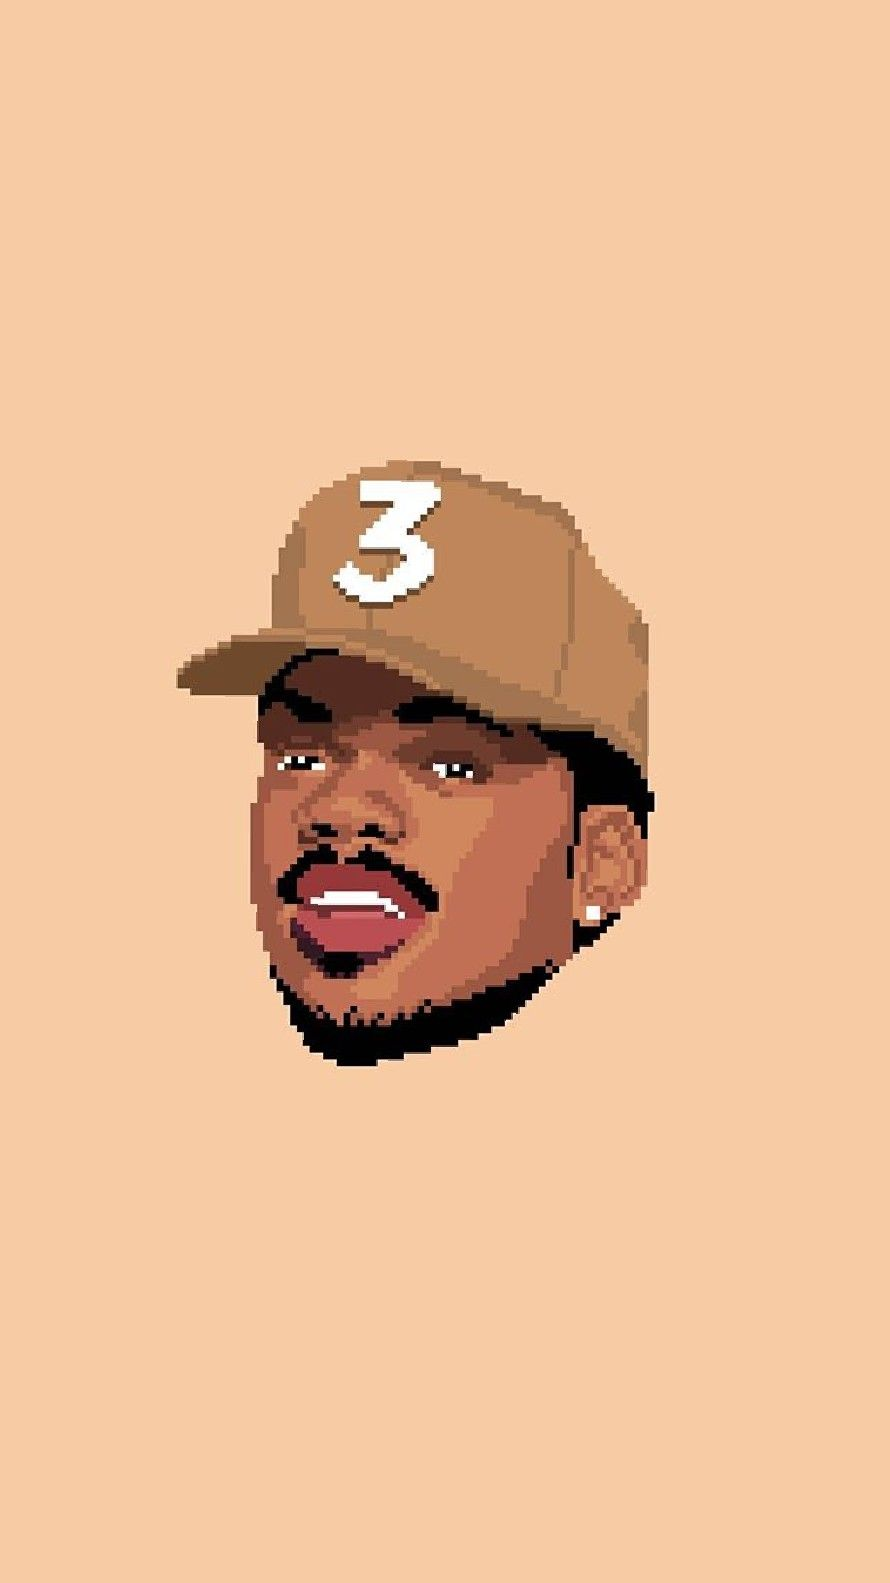 Chance The Rapper Iphone Wallpaper Design By 8 Bit Hip Hop Chancetherapper Chance The Rapper Wallpaper Rapper Wallpaper Iphone Rapper Art